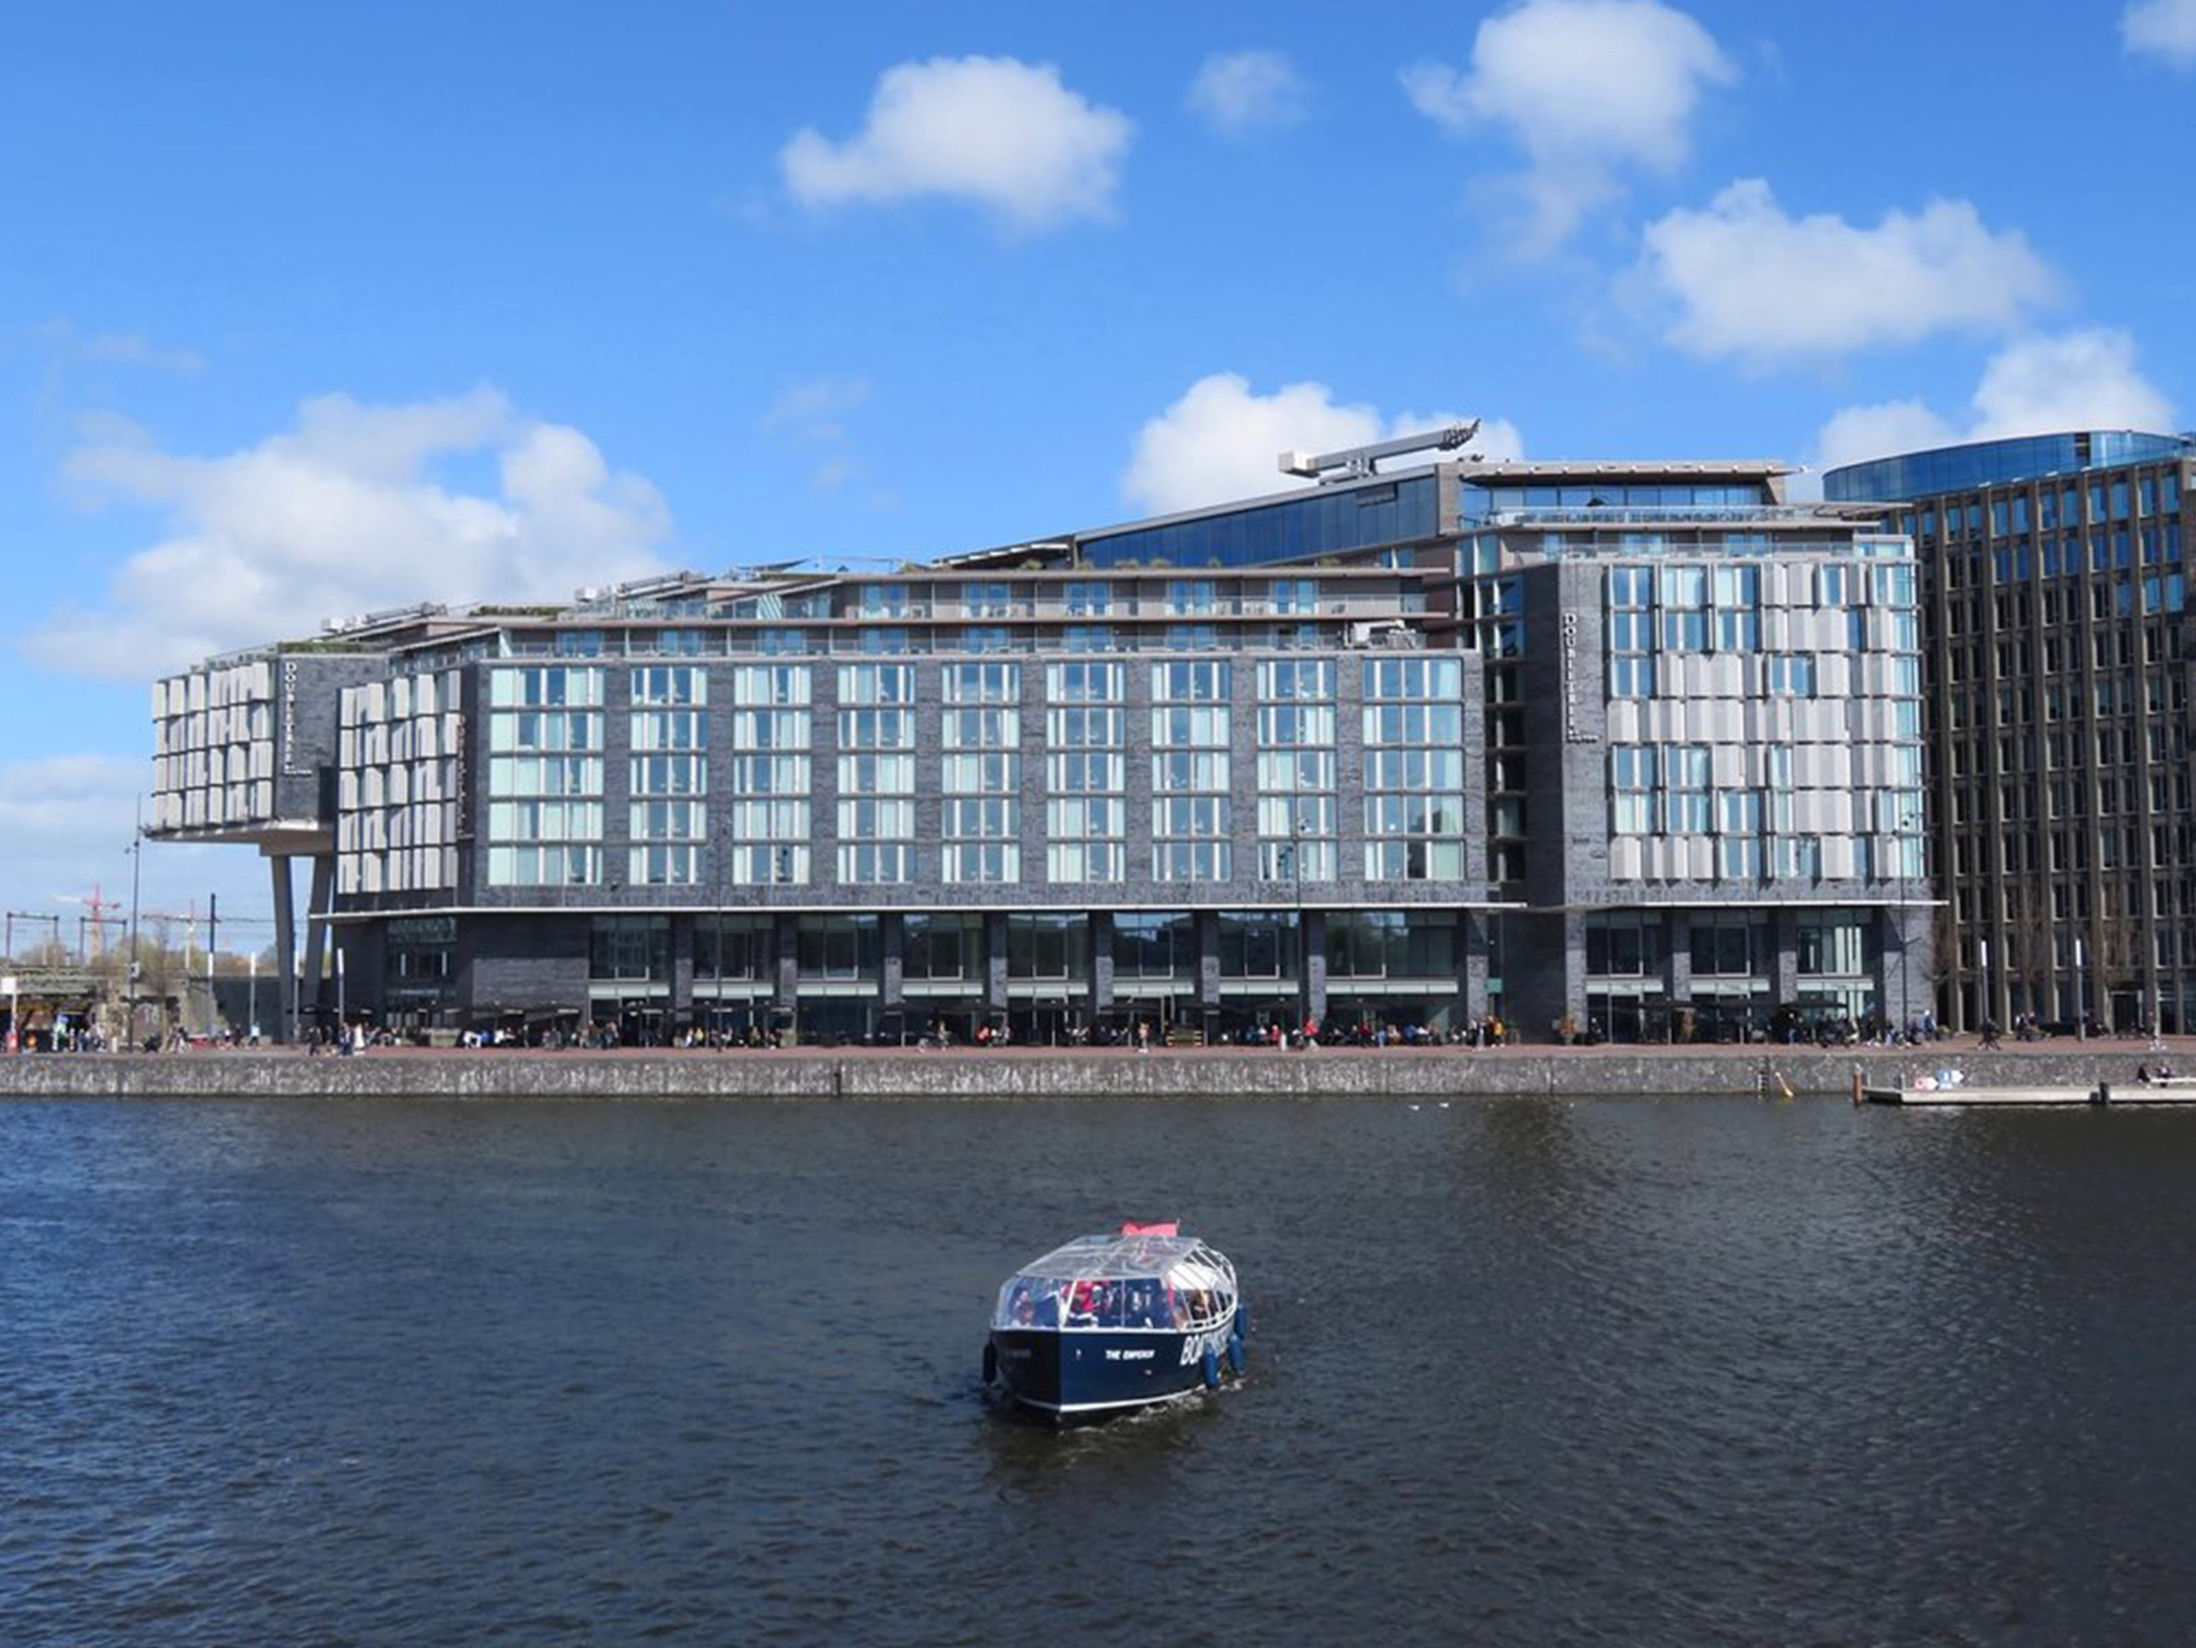 Best Hotels in Amsterdam - DoubleTree by Hilton Amsterdam Centraal Station